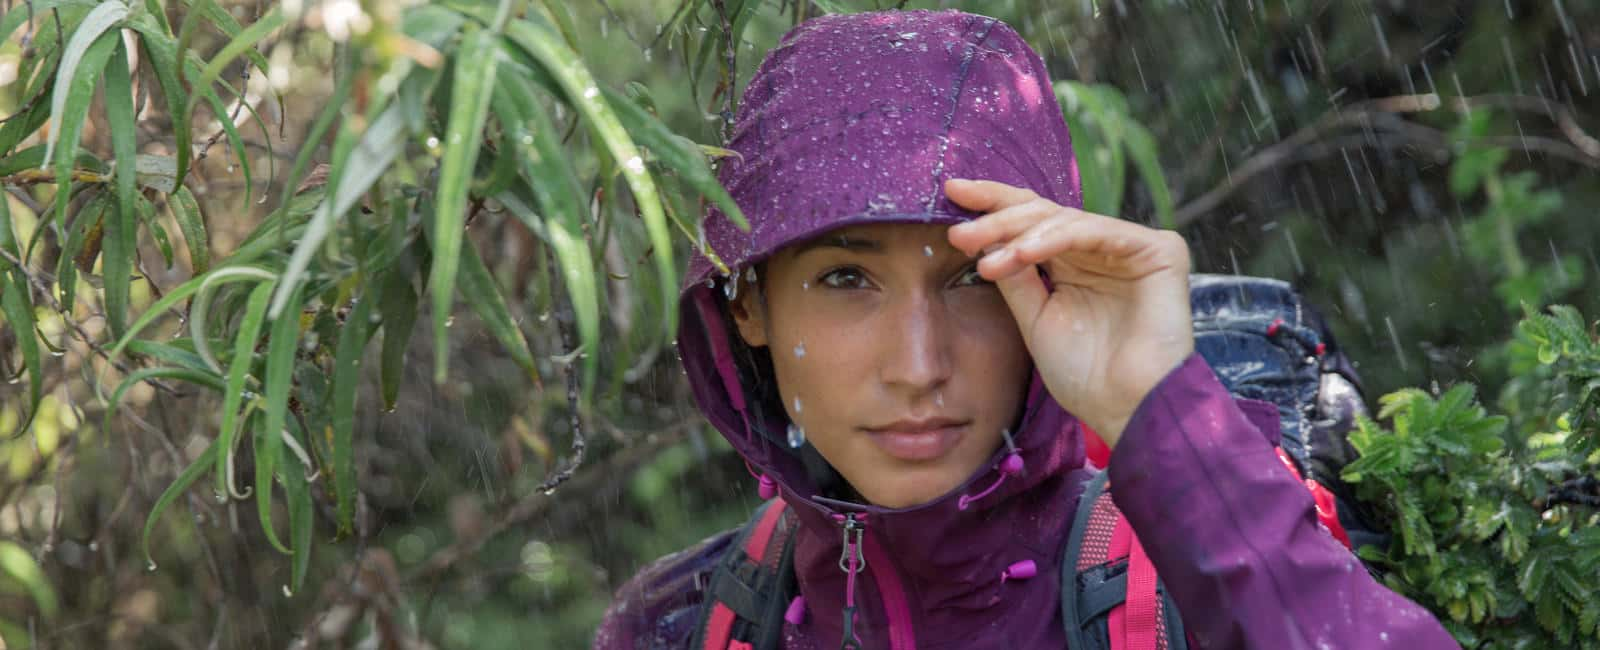 Keep Dry When Out Hiking: Check Out Our 8 Tips